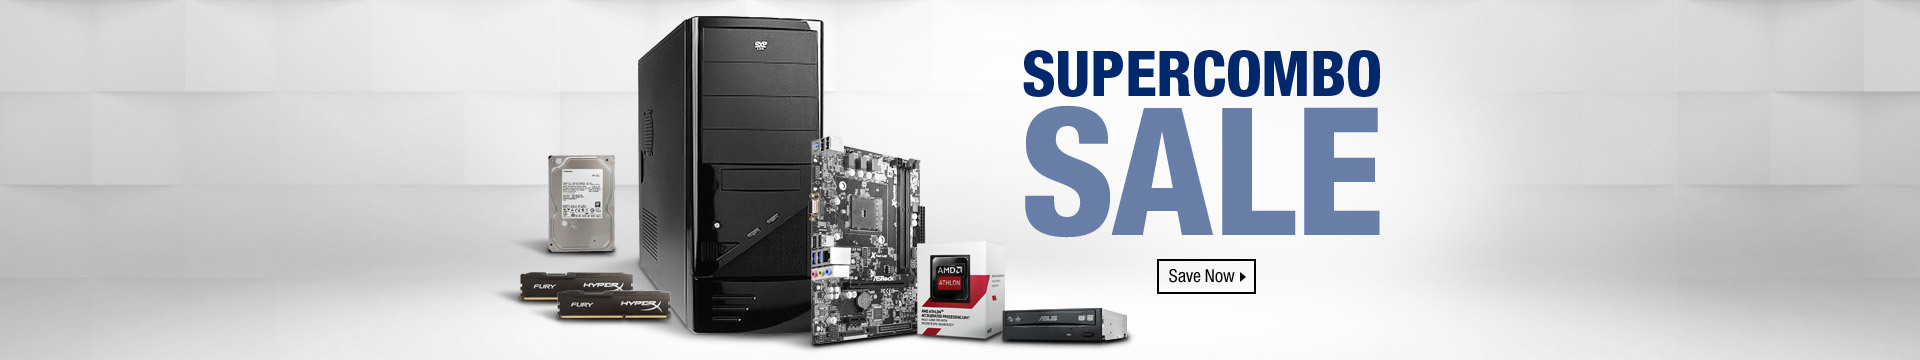 SUPERCOMBO SALE